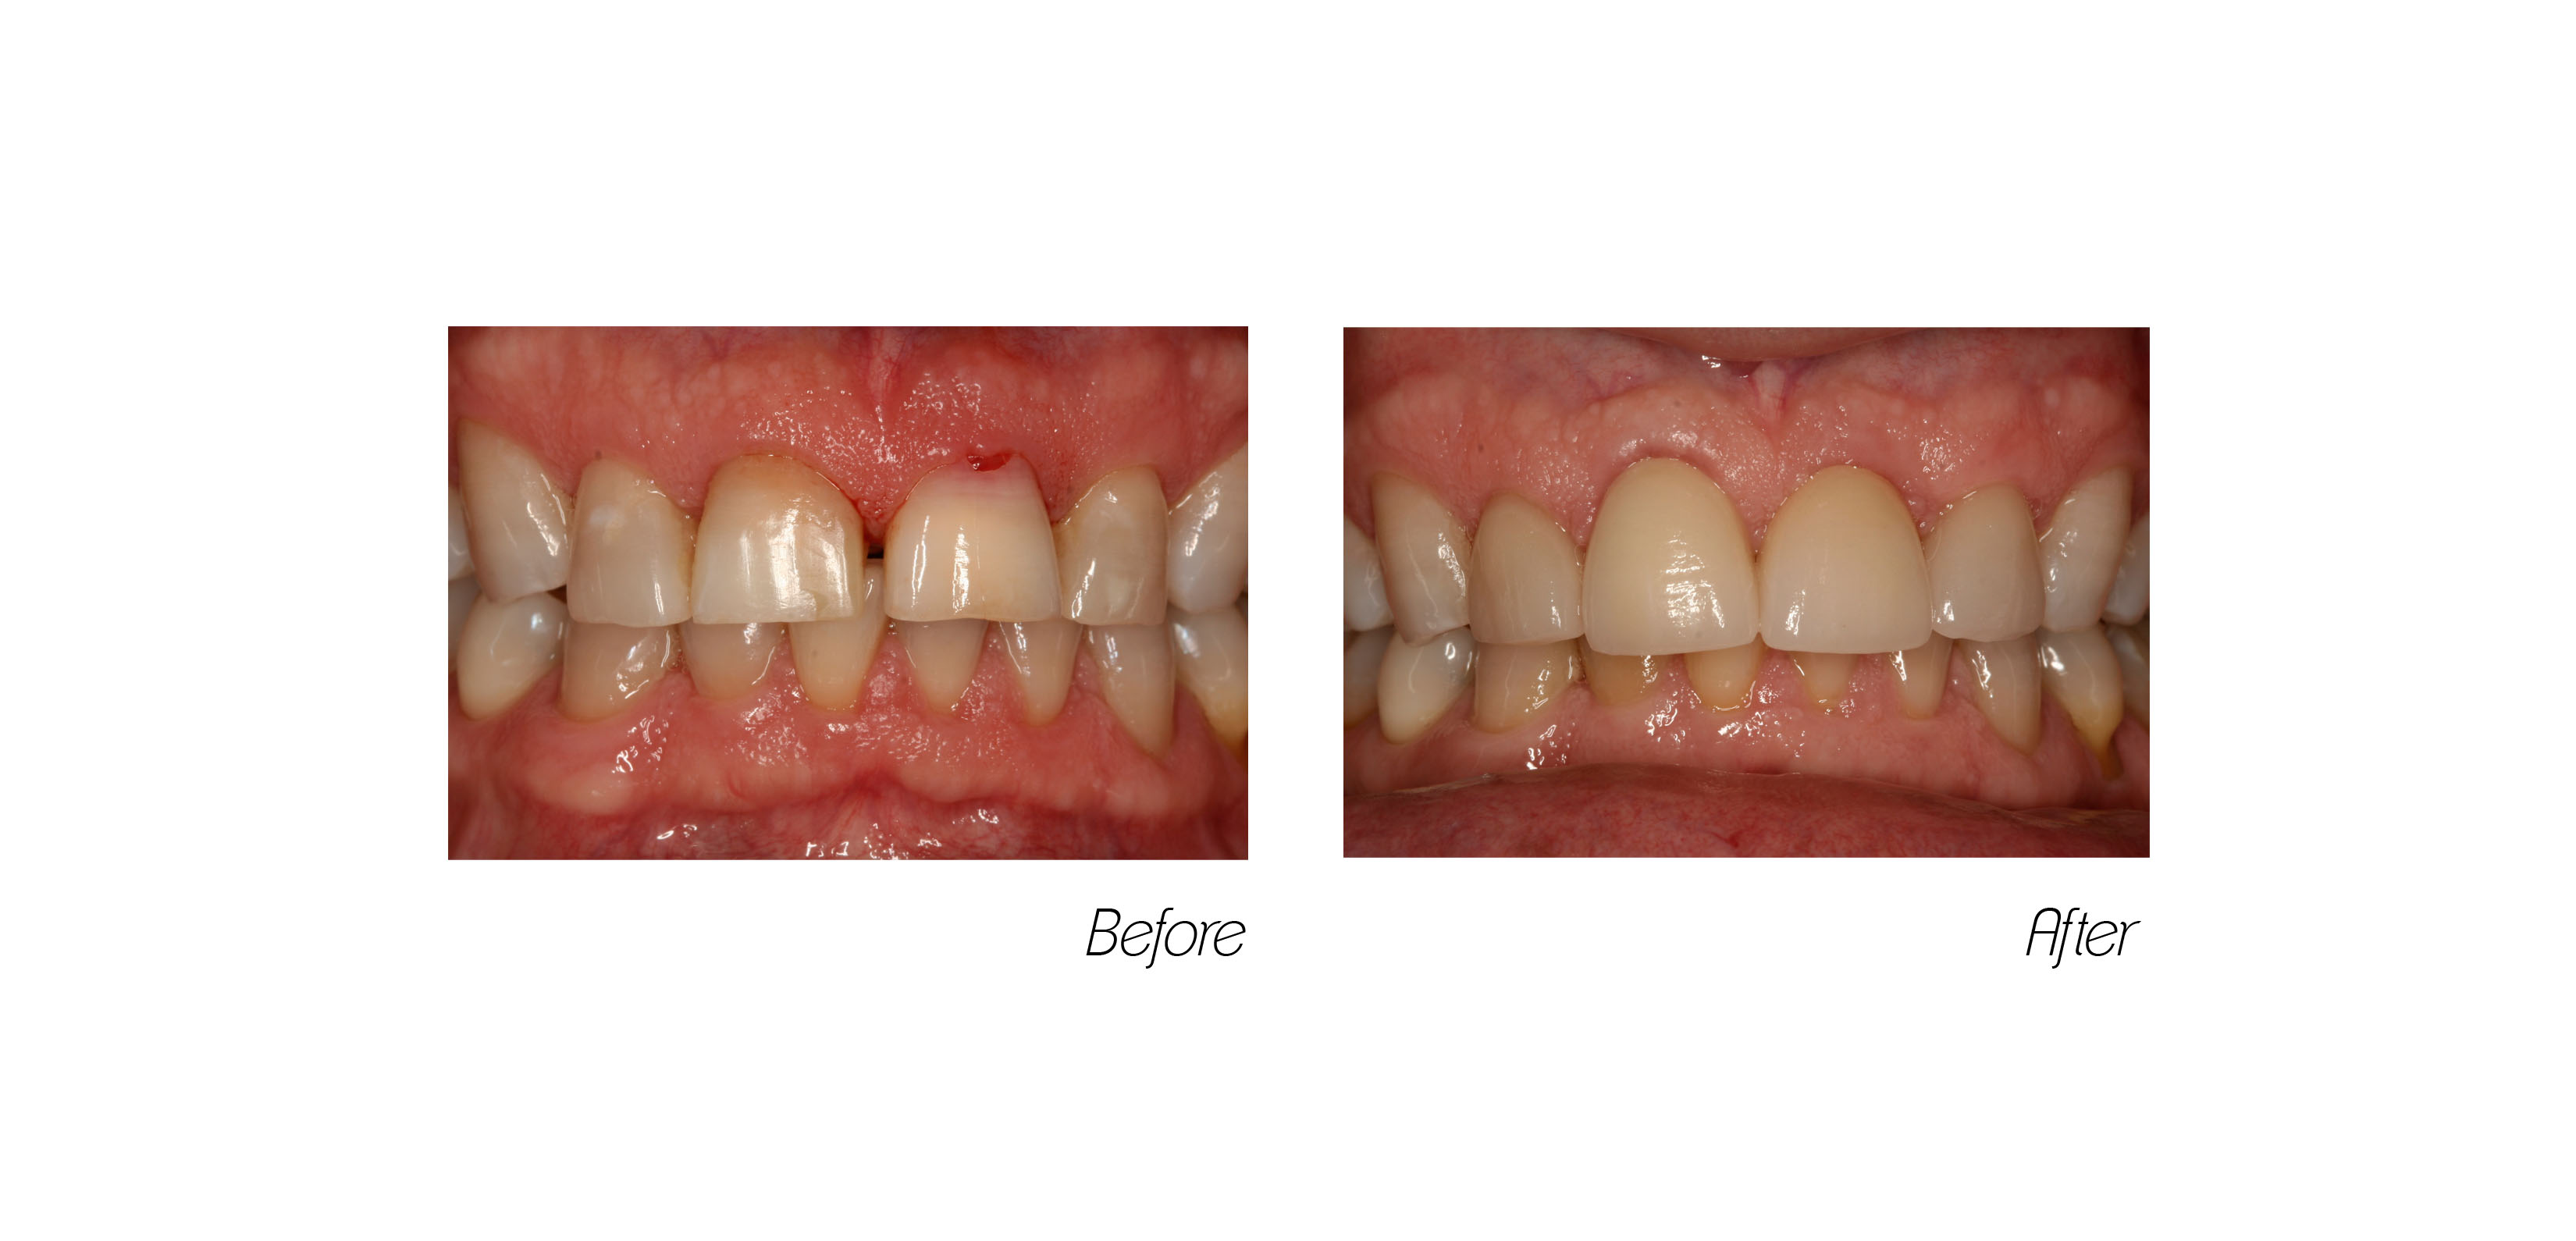 Crowns#6 (Implant)